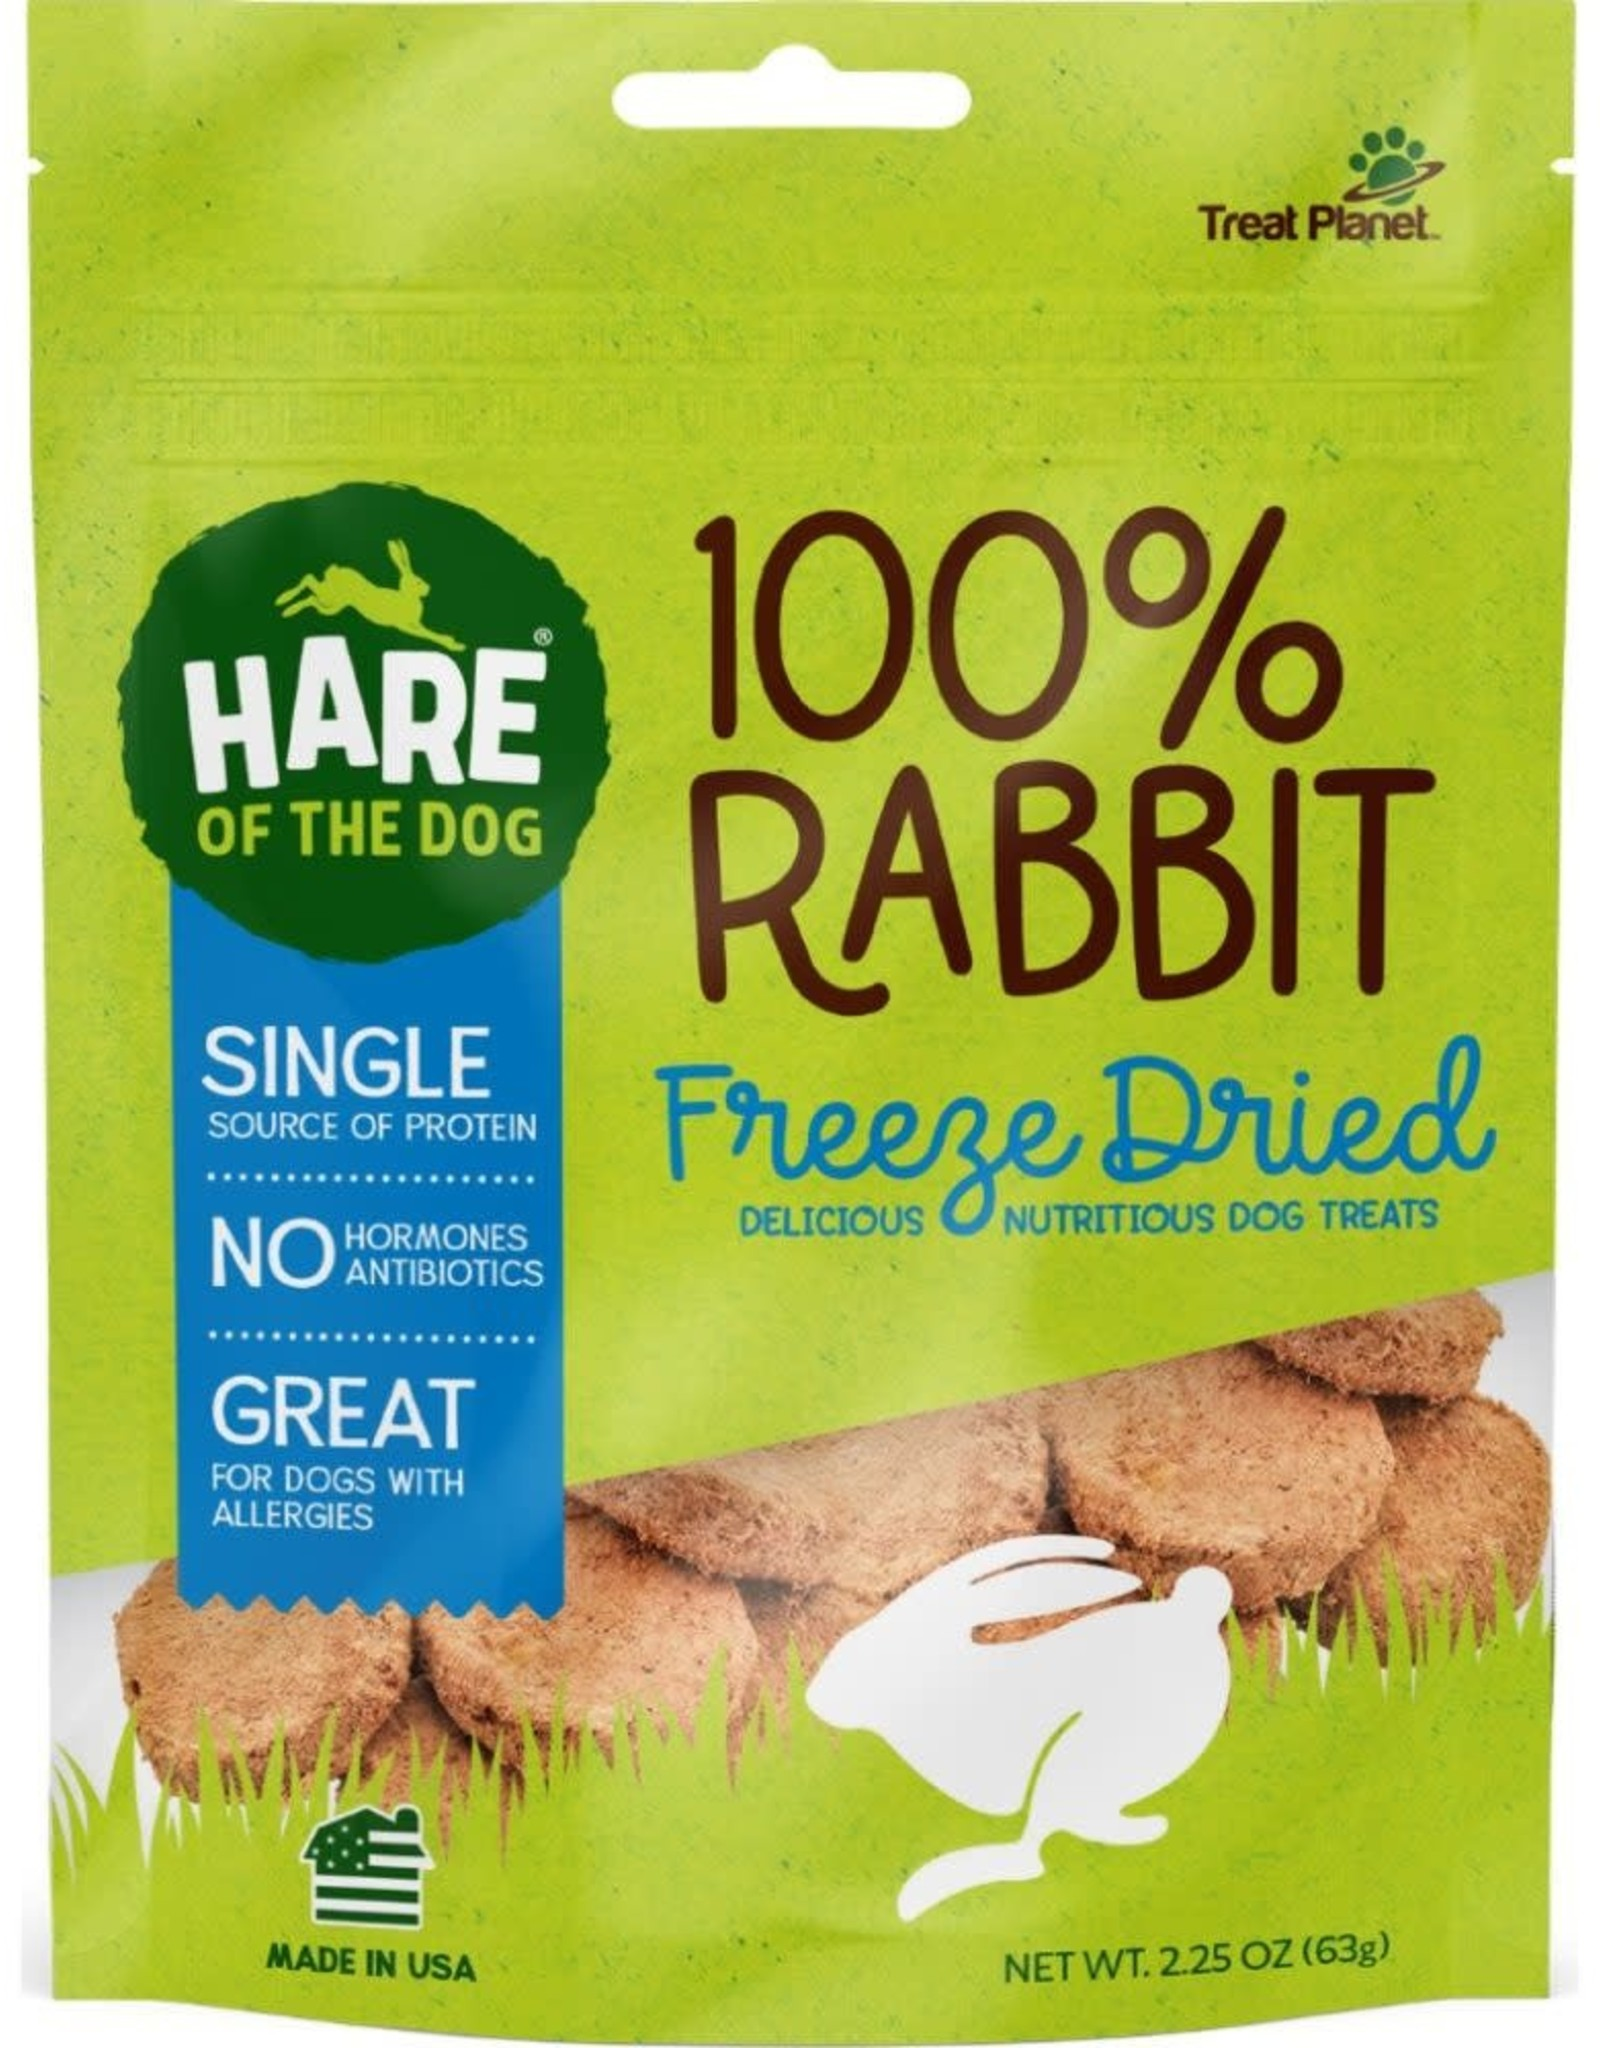 Hare of the Dog Hare Of The Dog Freeze Dried Rabbit 2.25 oz